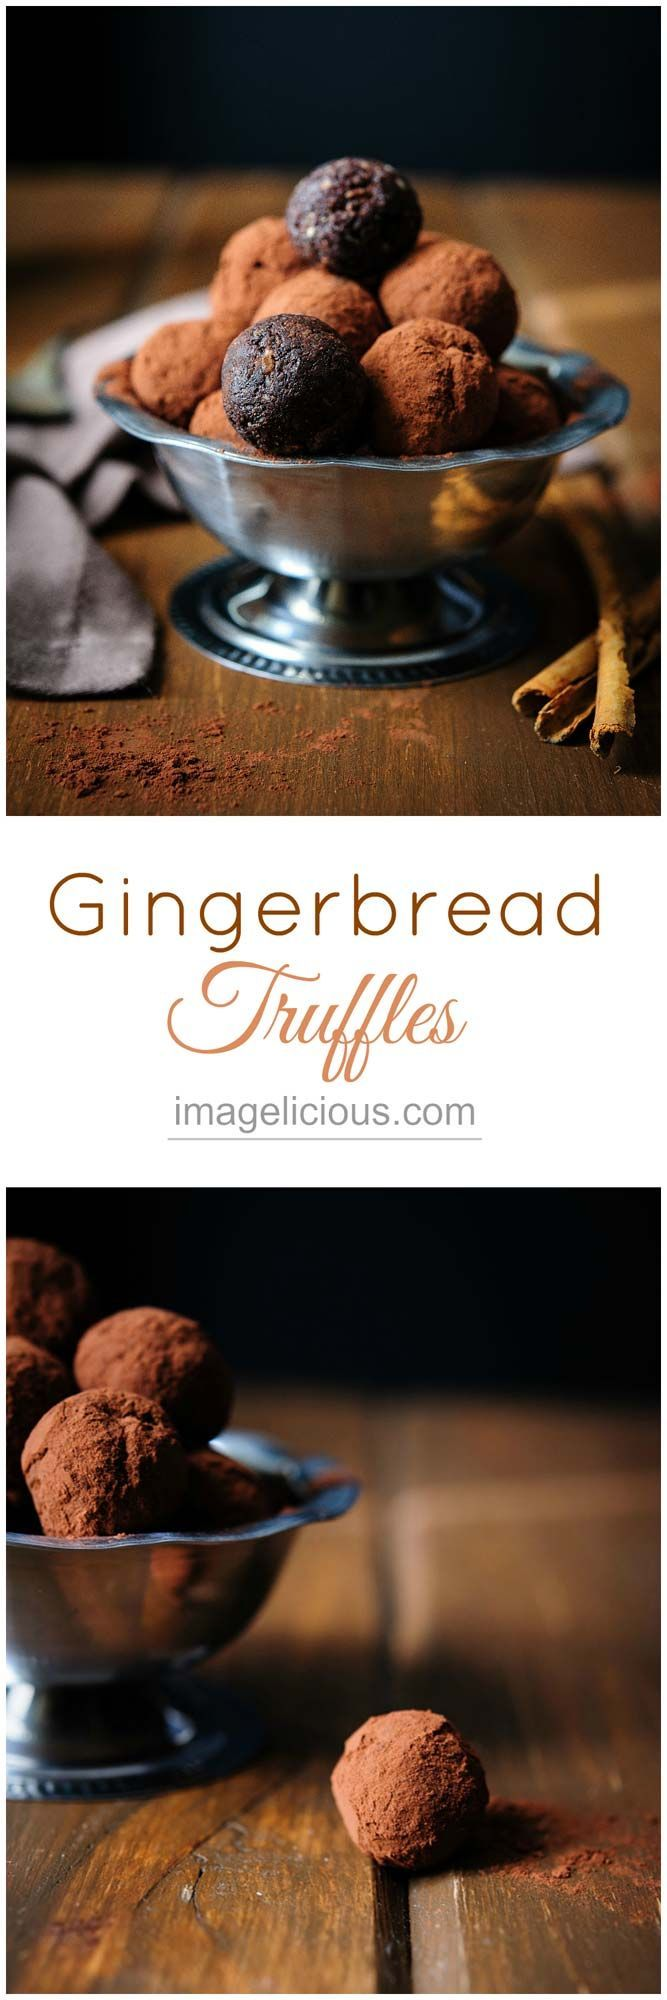 Gingerbread Truffles - sweet and delicious vegan treats made out of dates, prunes and pecans with perfect holiday flavours